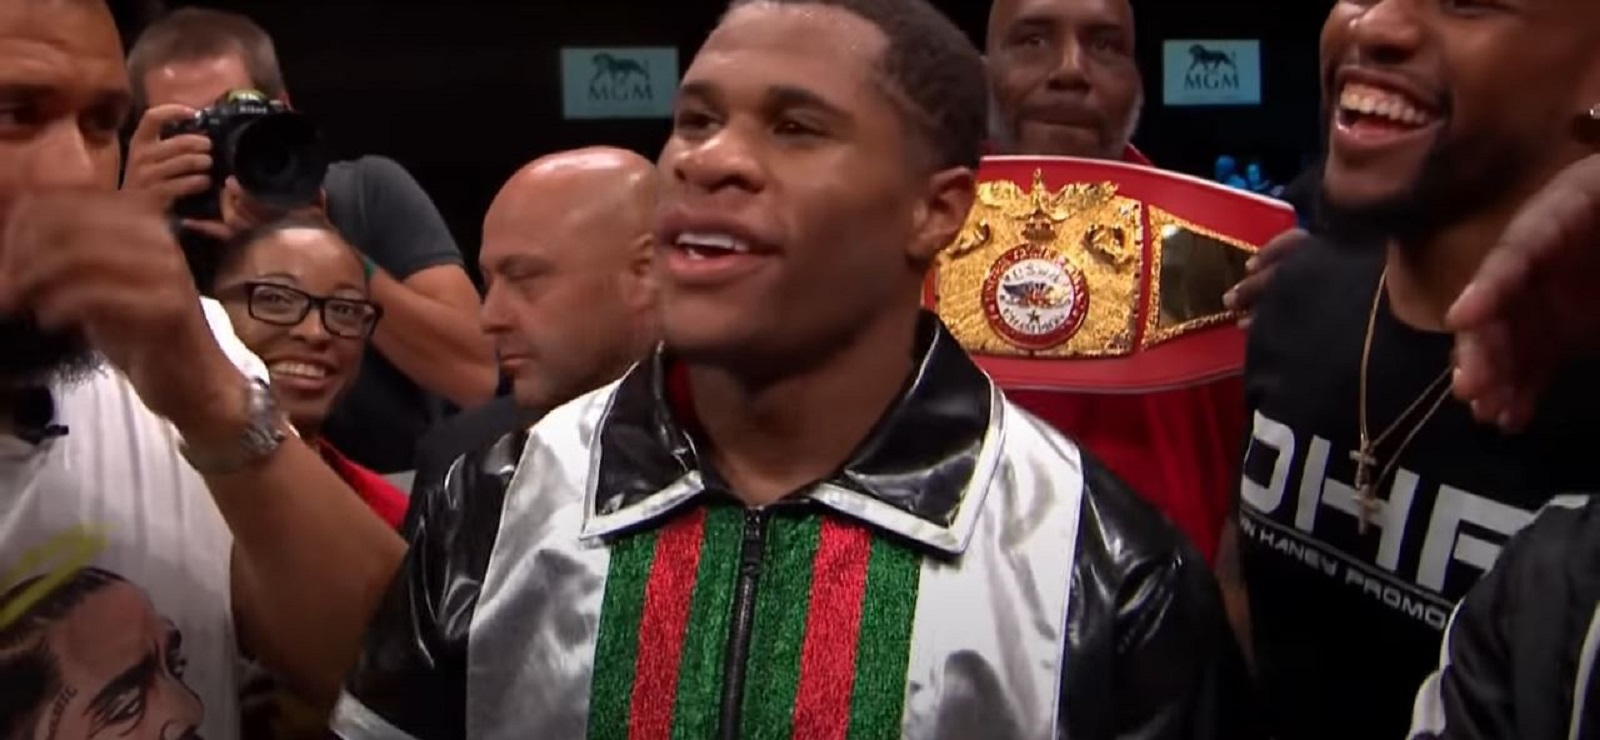 Devin Haney Reaction To Adrien Broner Win Proving Controversial